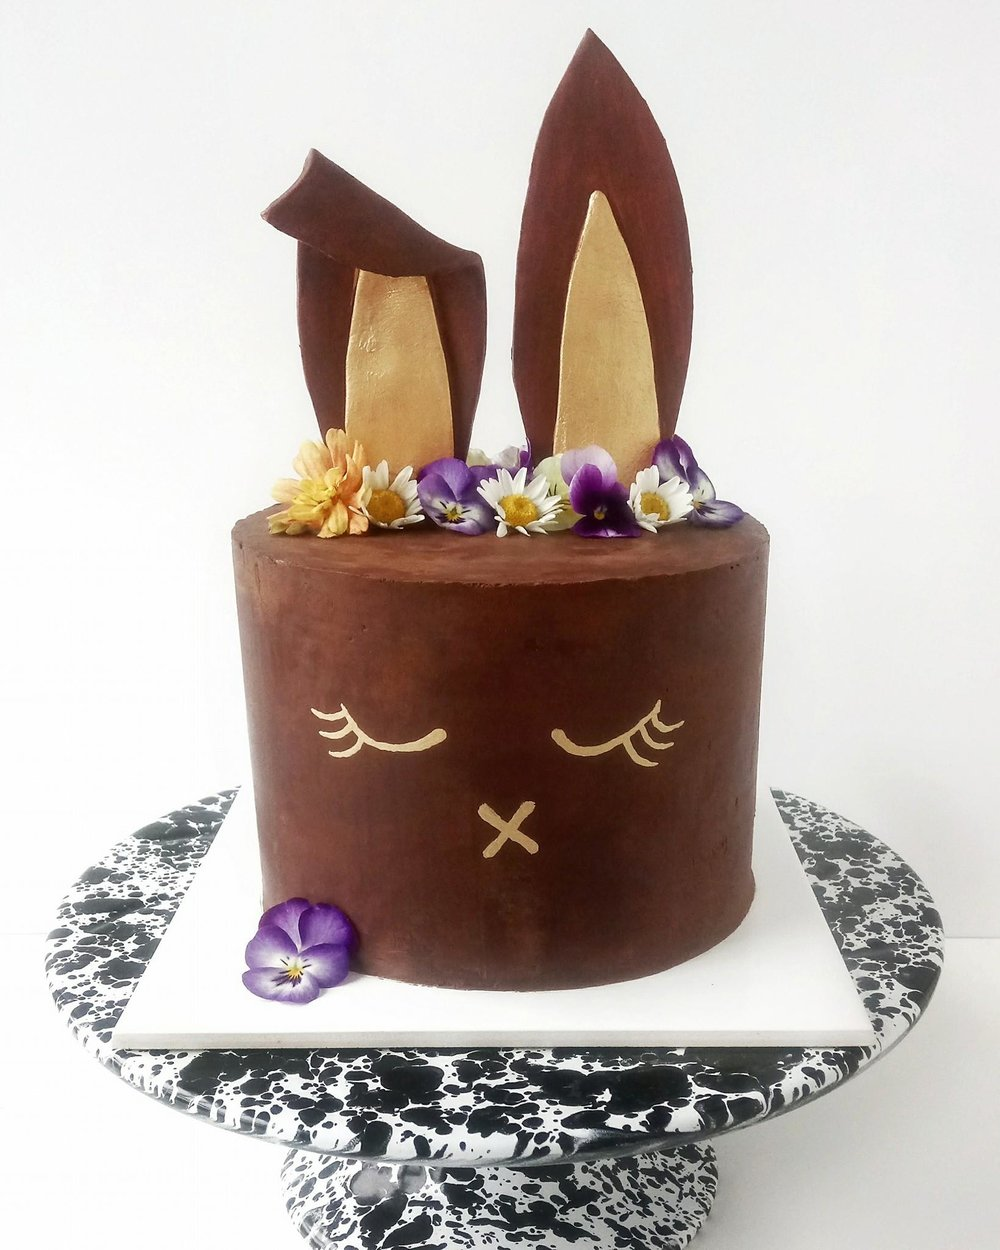 Rebecca Jane Sugar Art - chocolate gold easter bunny cake